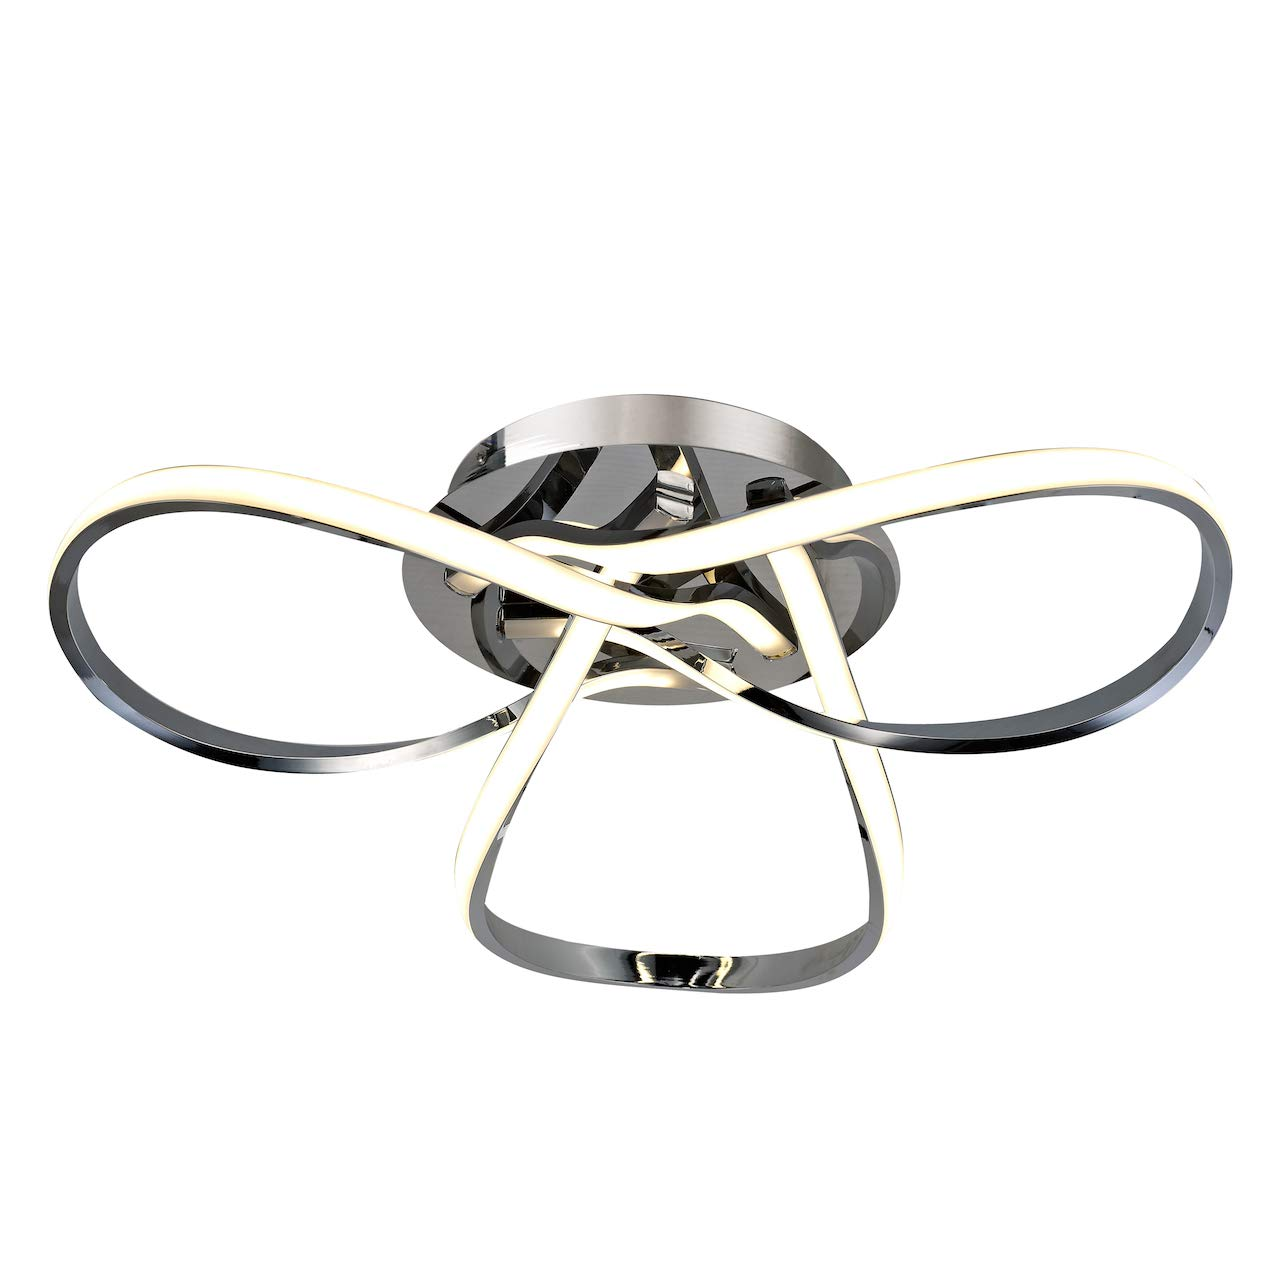 AUROLITE HALO - Contemporary LED Chrome Semi Flush Ceiling Light, 36W 2500LM, Dimmable, 3000K Warm White, Modern Swirl Design, Ideal For Lounge, Living Room and Bedroom, 1 YEAR WARRANTY [Energy Class A+]